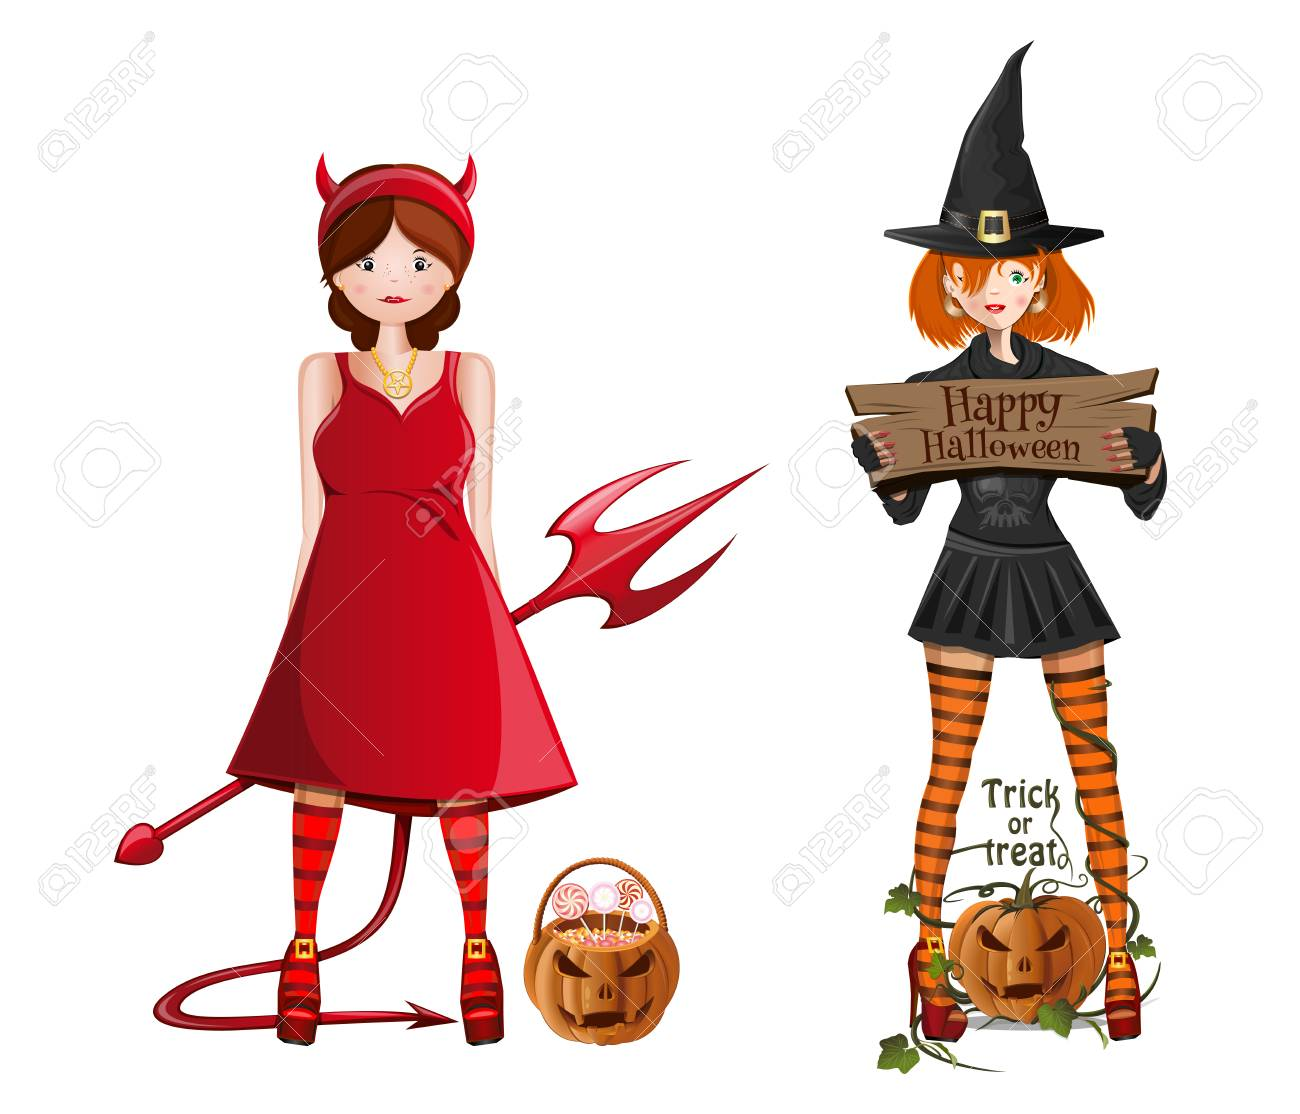 Cute Girls In Fancy Dress For Halloween A Girl In A Witch Costume Royalty Free Cliparts Vectors And Stock Illustration Image 110020764